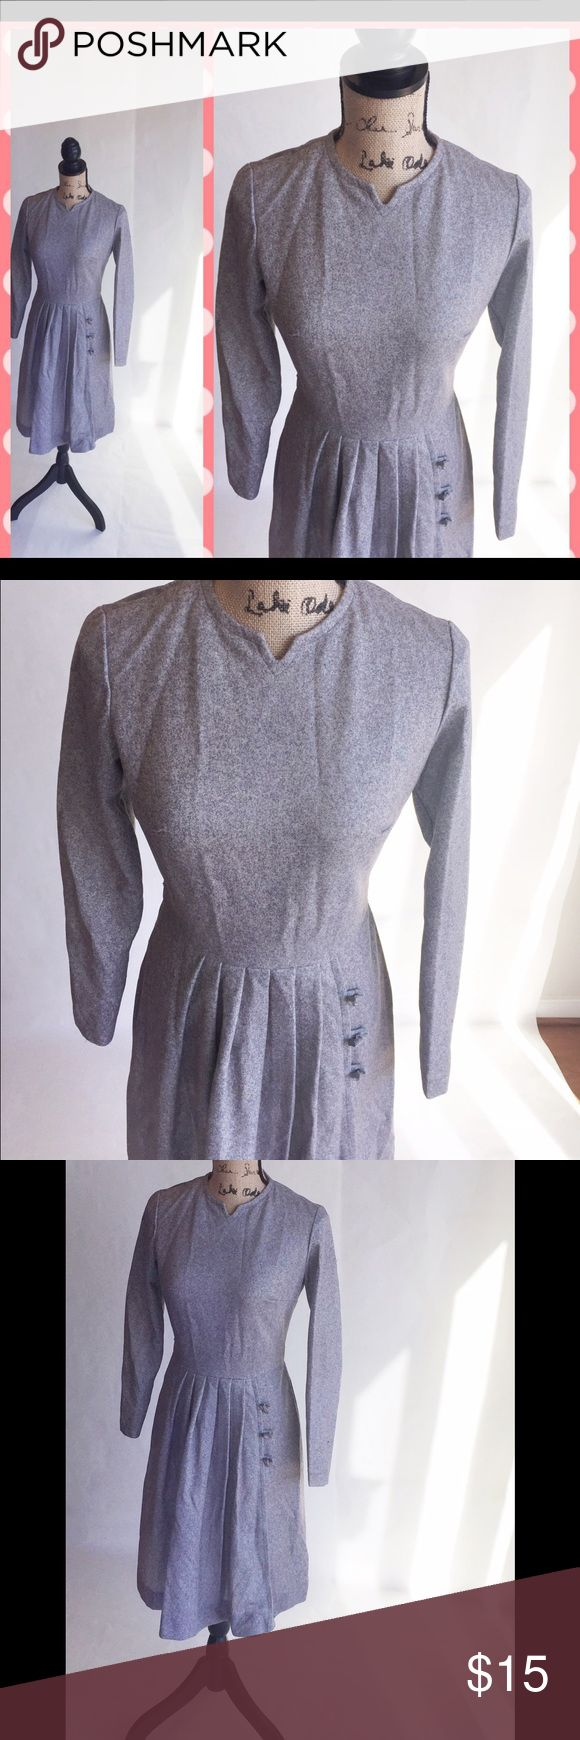 """Classic grey vintage dress This beautiful dress will make you look more like the classic beauty you already are. Measures 14"""" shoulder to shoulder, 25"""" at true waist and 35"""" right below the hips. Authentic Original Vintage Style Dresses"""